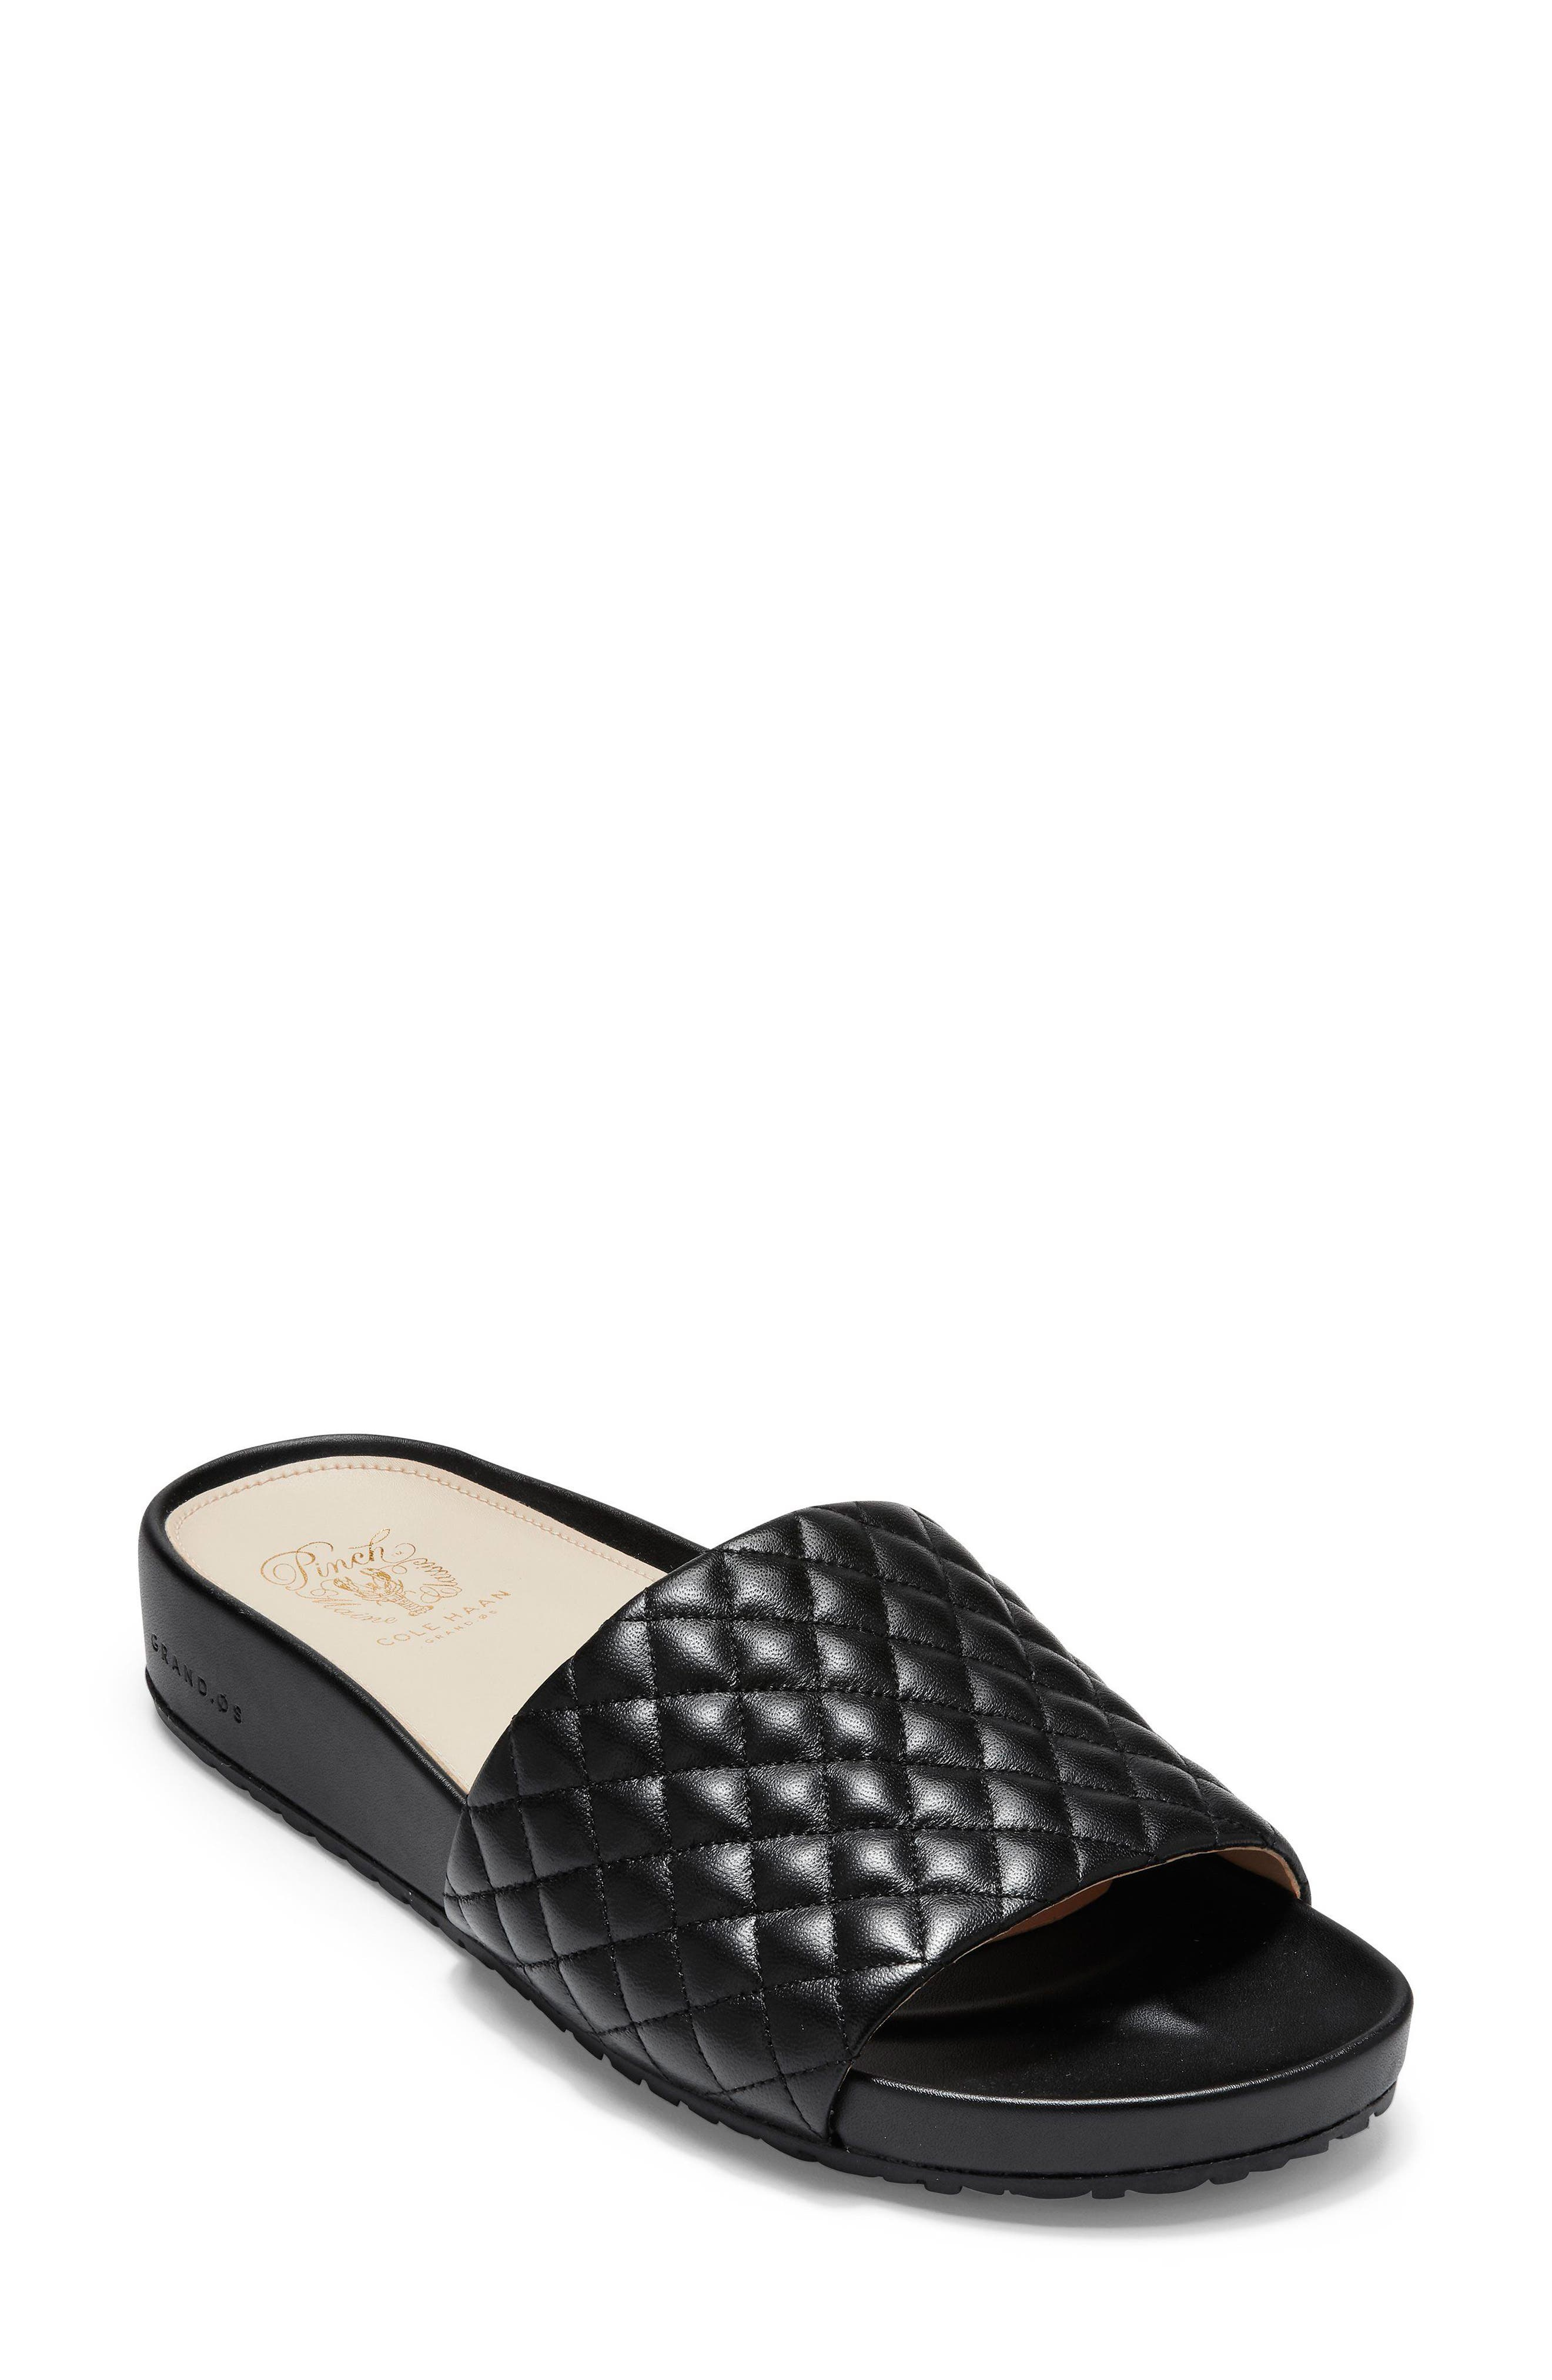 Pinch Montauk Slide Sandal,                         Main,                         color, 001